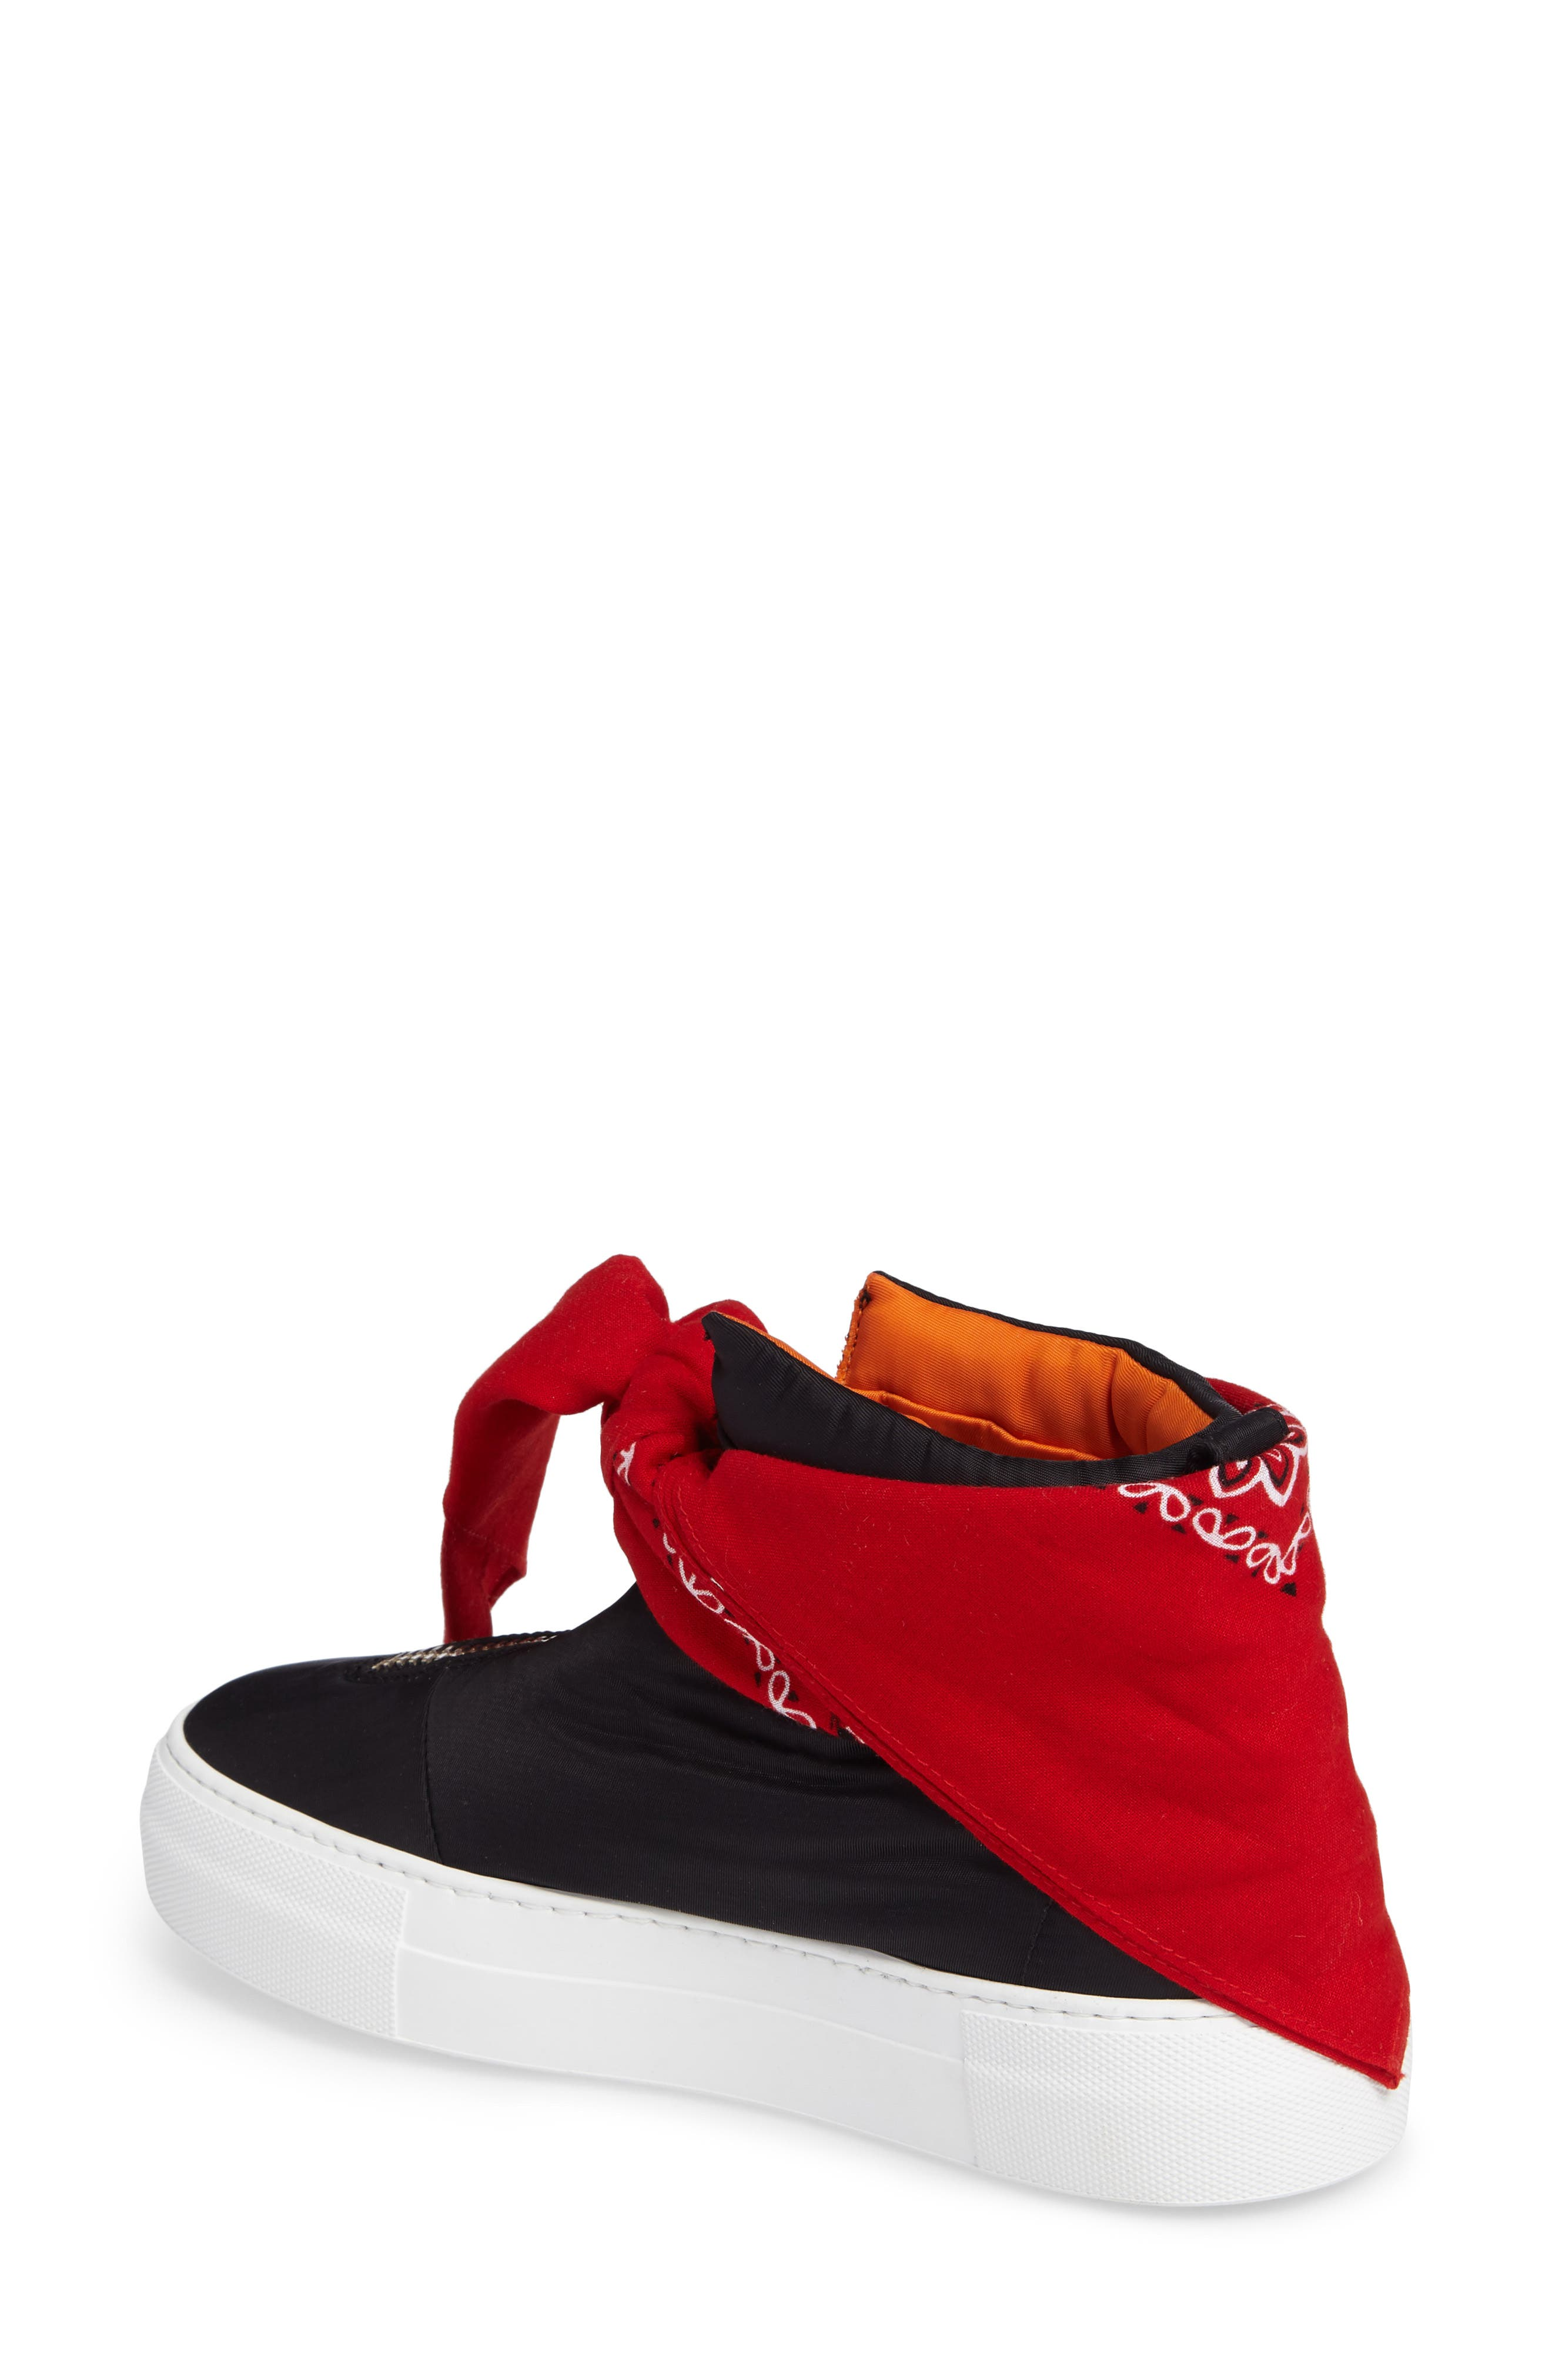 Bandana High Top Sneaker,                             Alternate thumbnail 2, color,                             Black